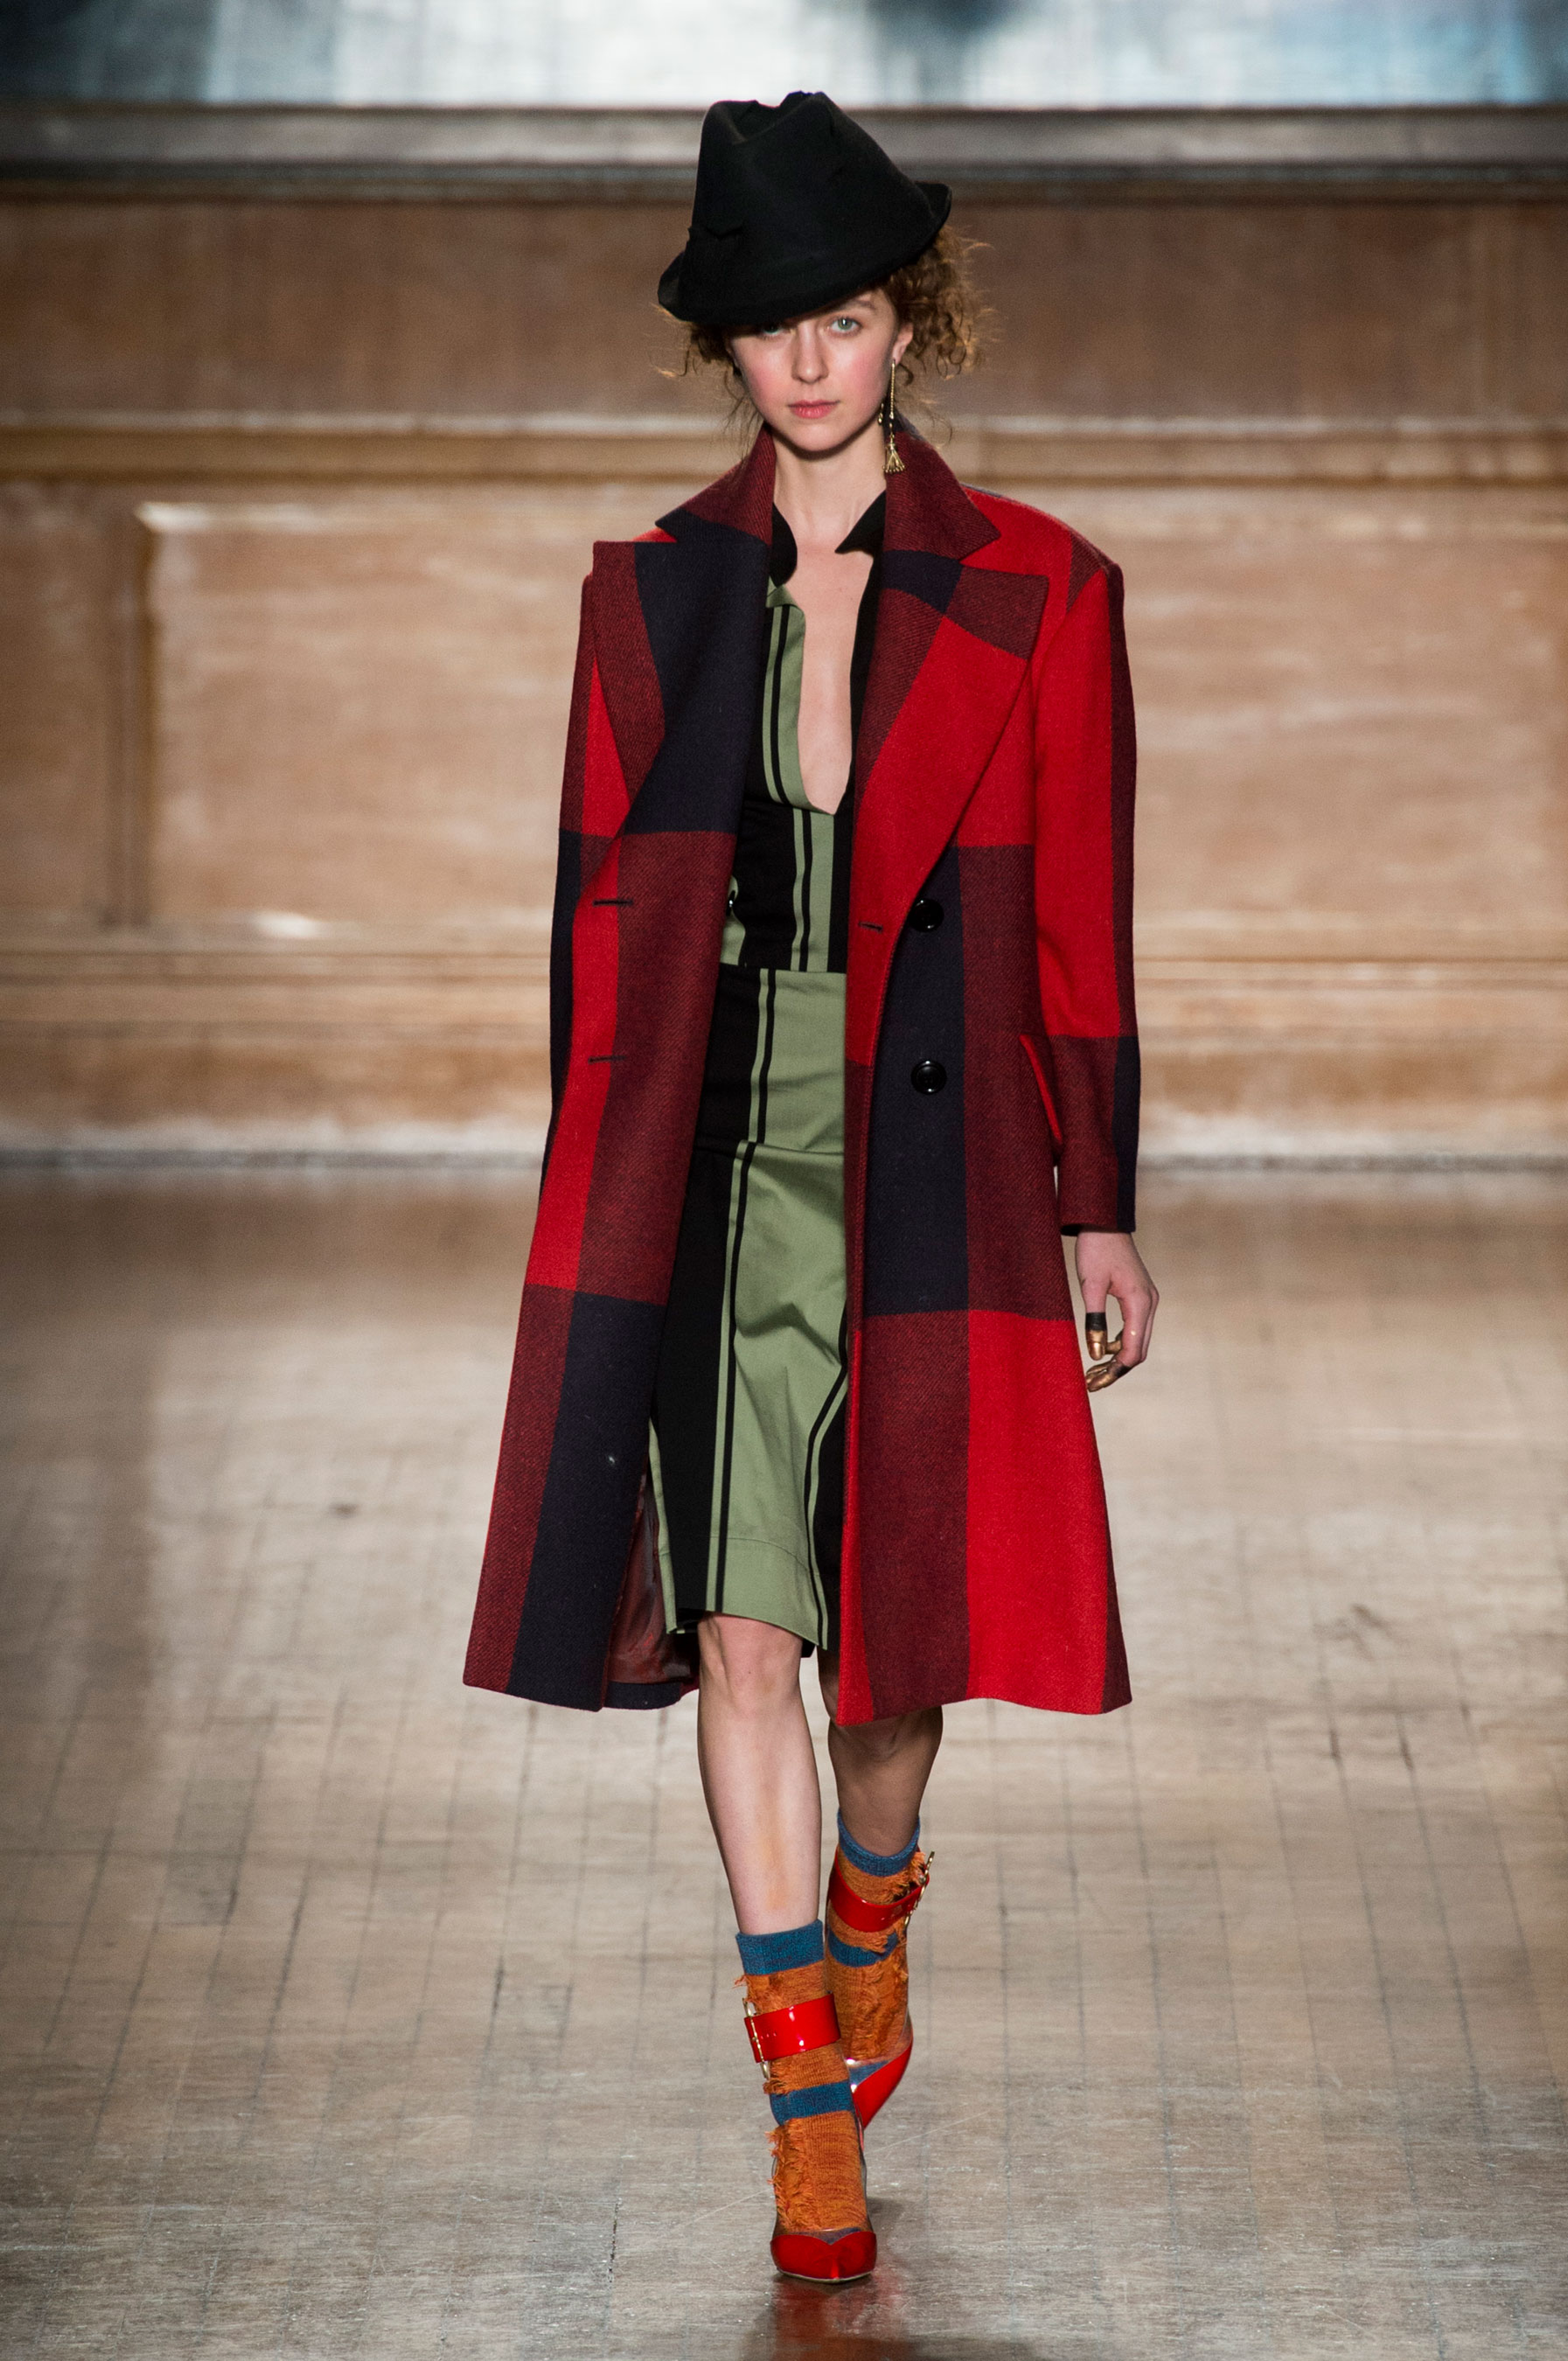 Vivienne westwood red label fall / winter 2017 collection